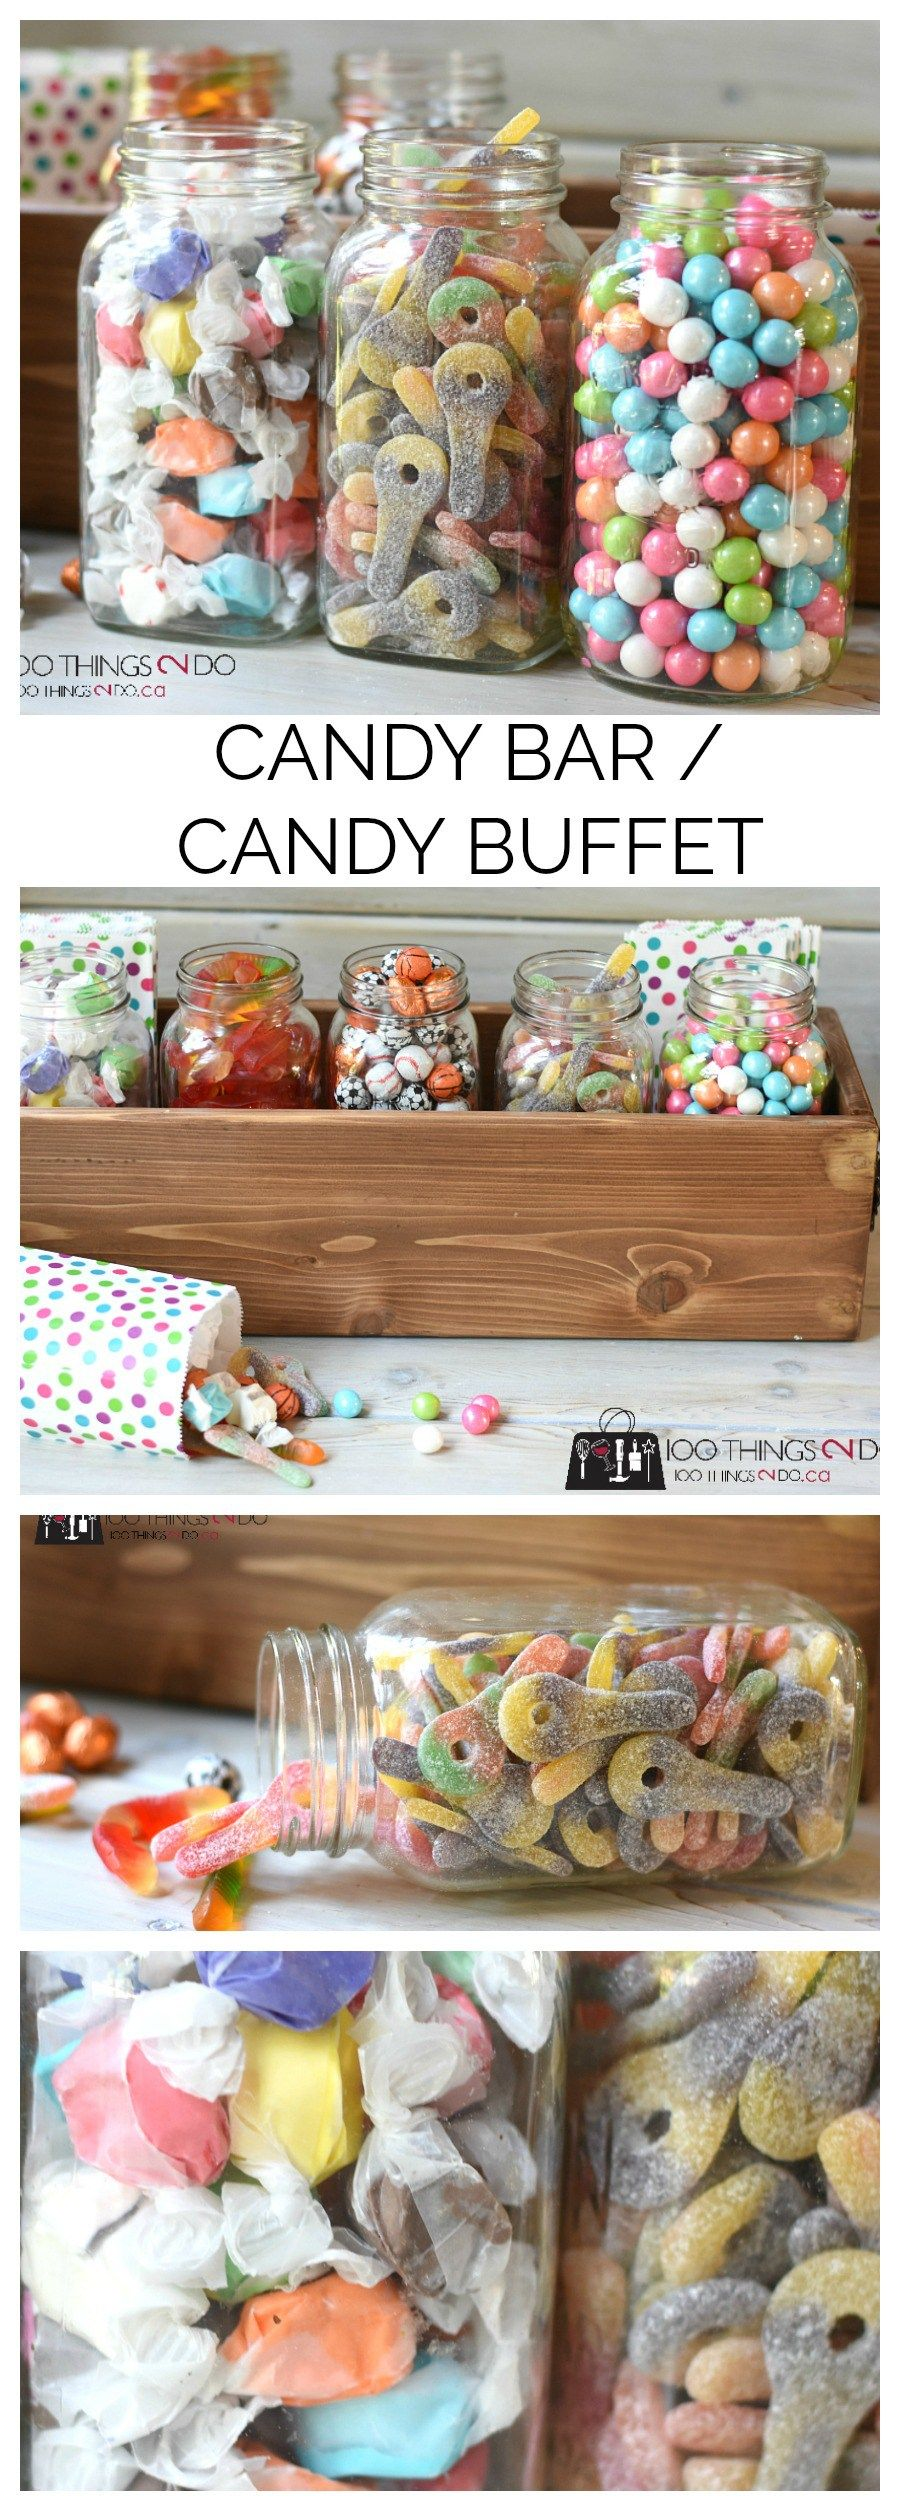 candy bar candy buffet f te enfant fille buffet. Black Bedroom Furniture Sets. Home Design Ideas